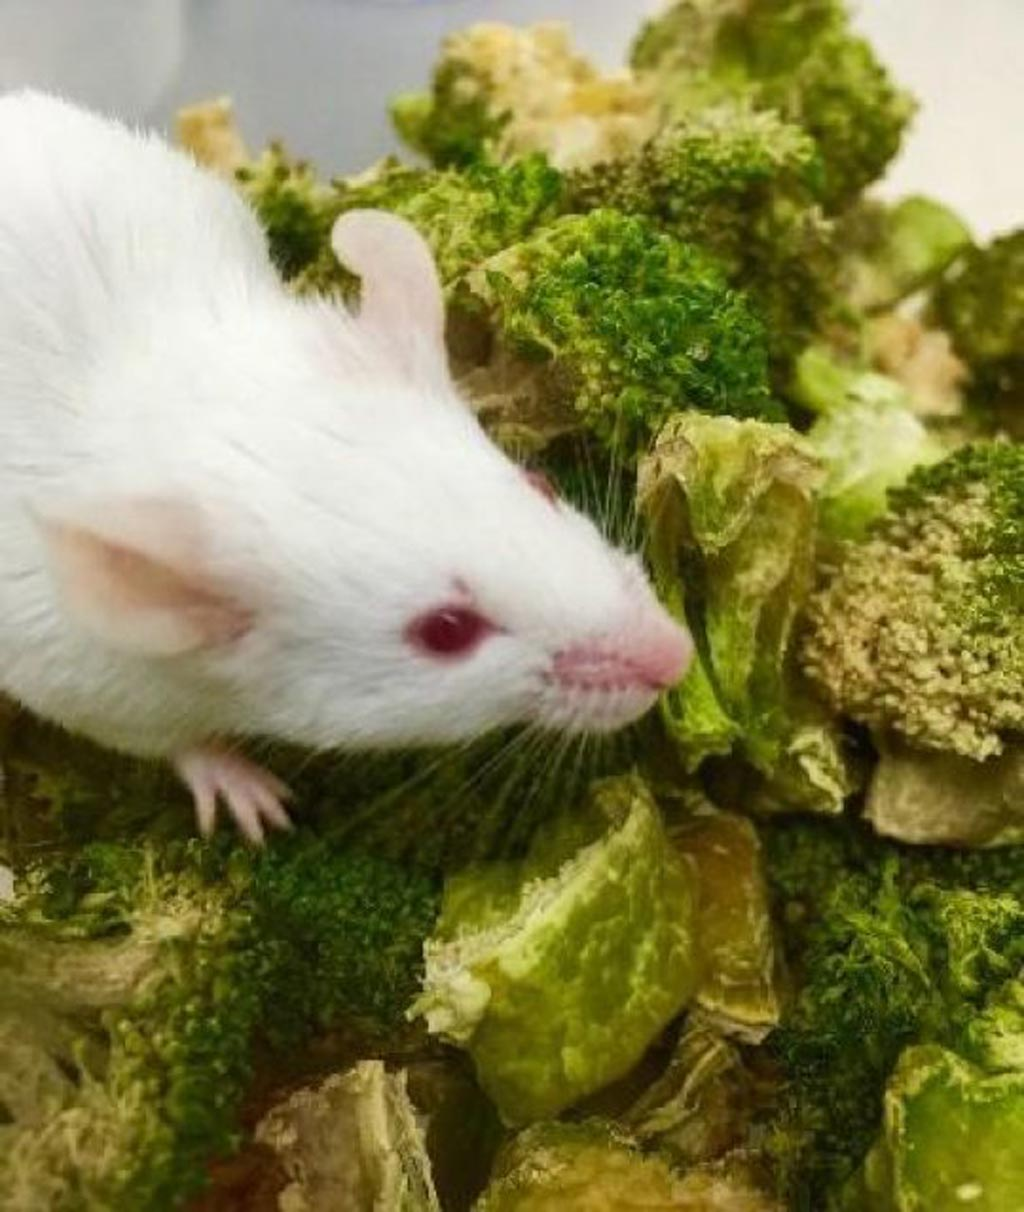 Image: Colorectal cancer was blocked in mice fed with a genetically engineered microbe and a cruciferous vegetable-rich diet (Photo courtesy of Dr. Chun-Loong Ho, National University of Singapore).